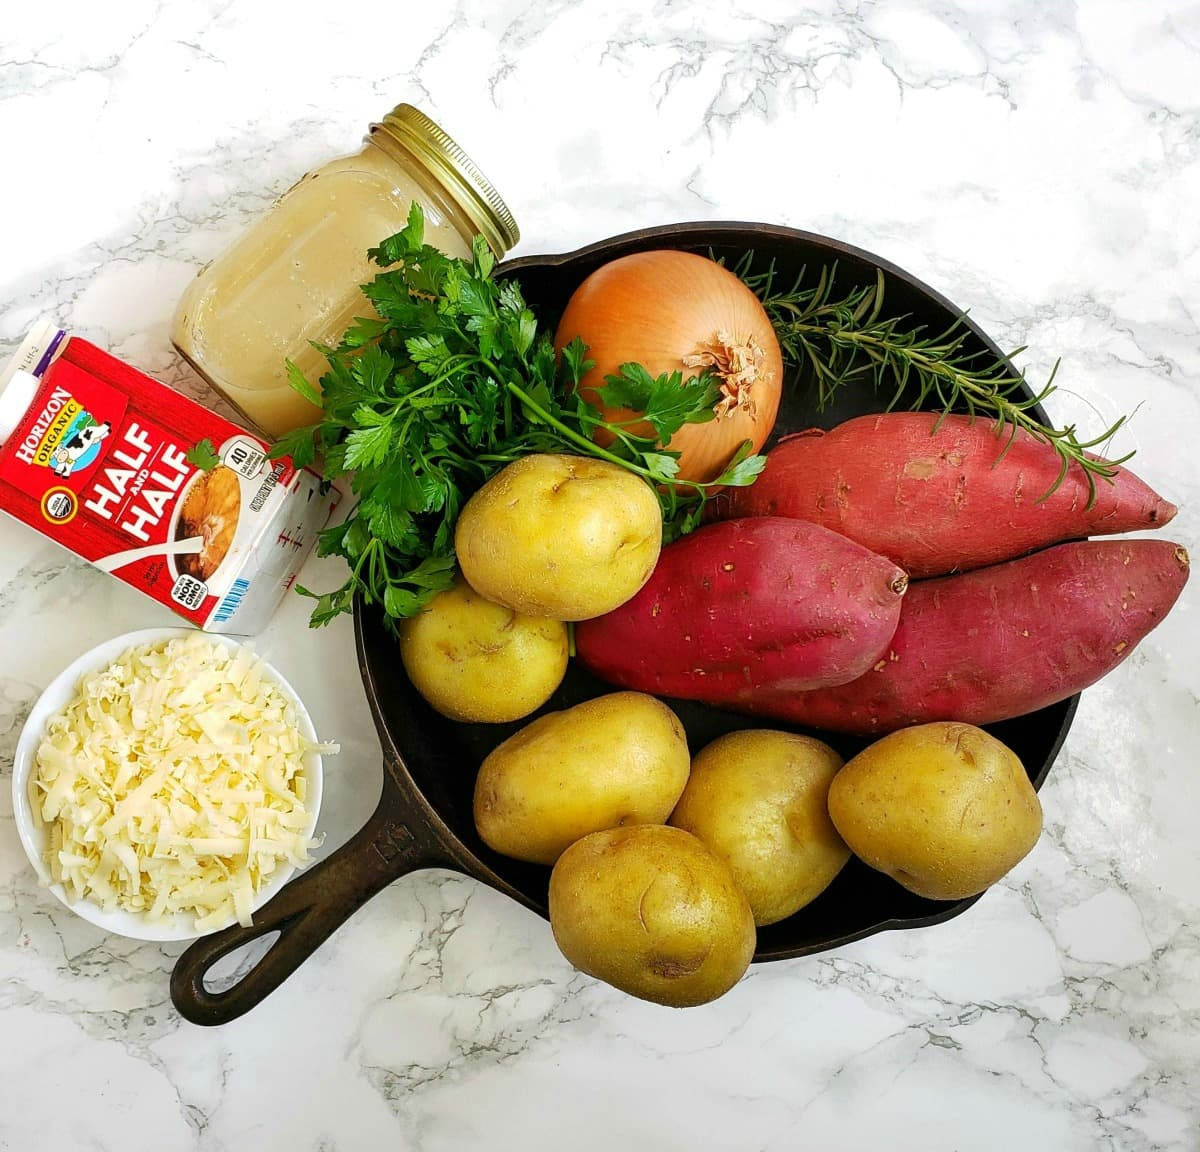 Ingredients for Cheese Herb Potato Gratin